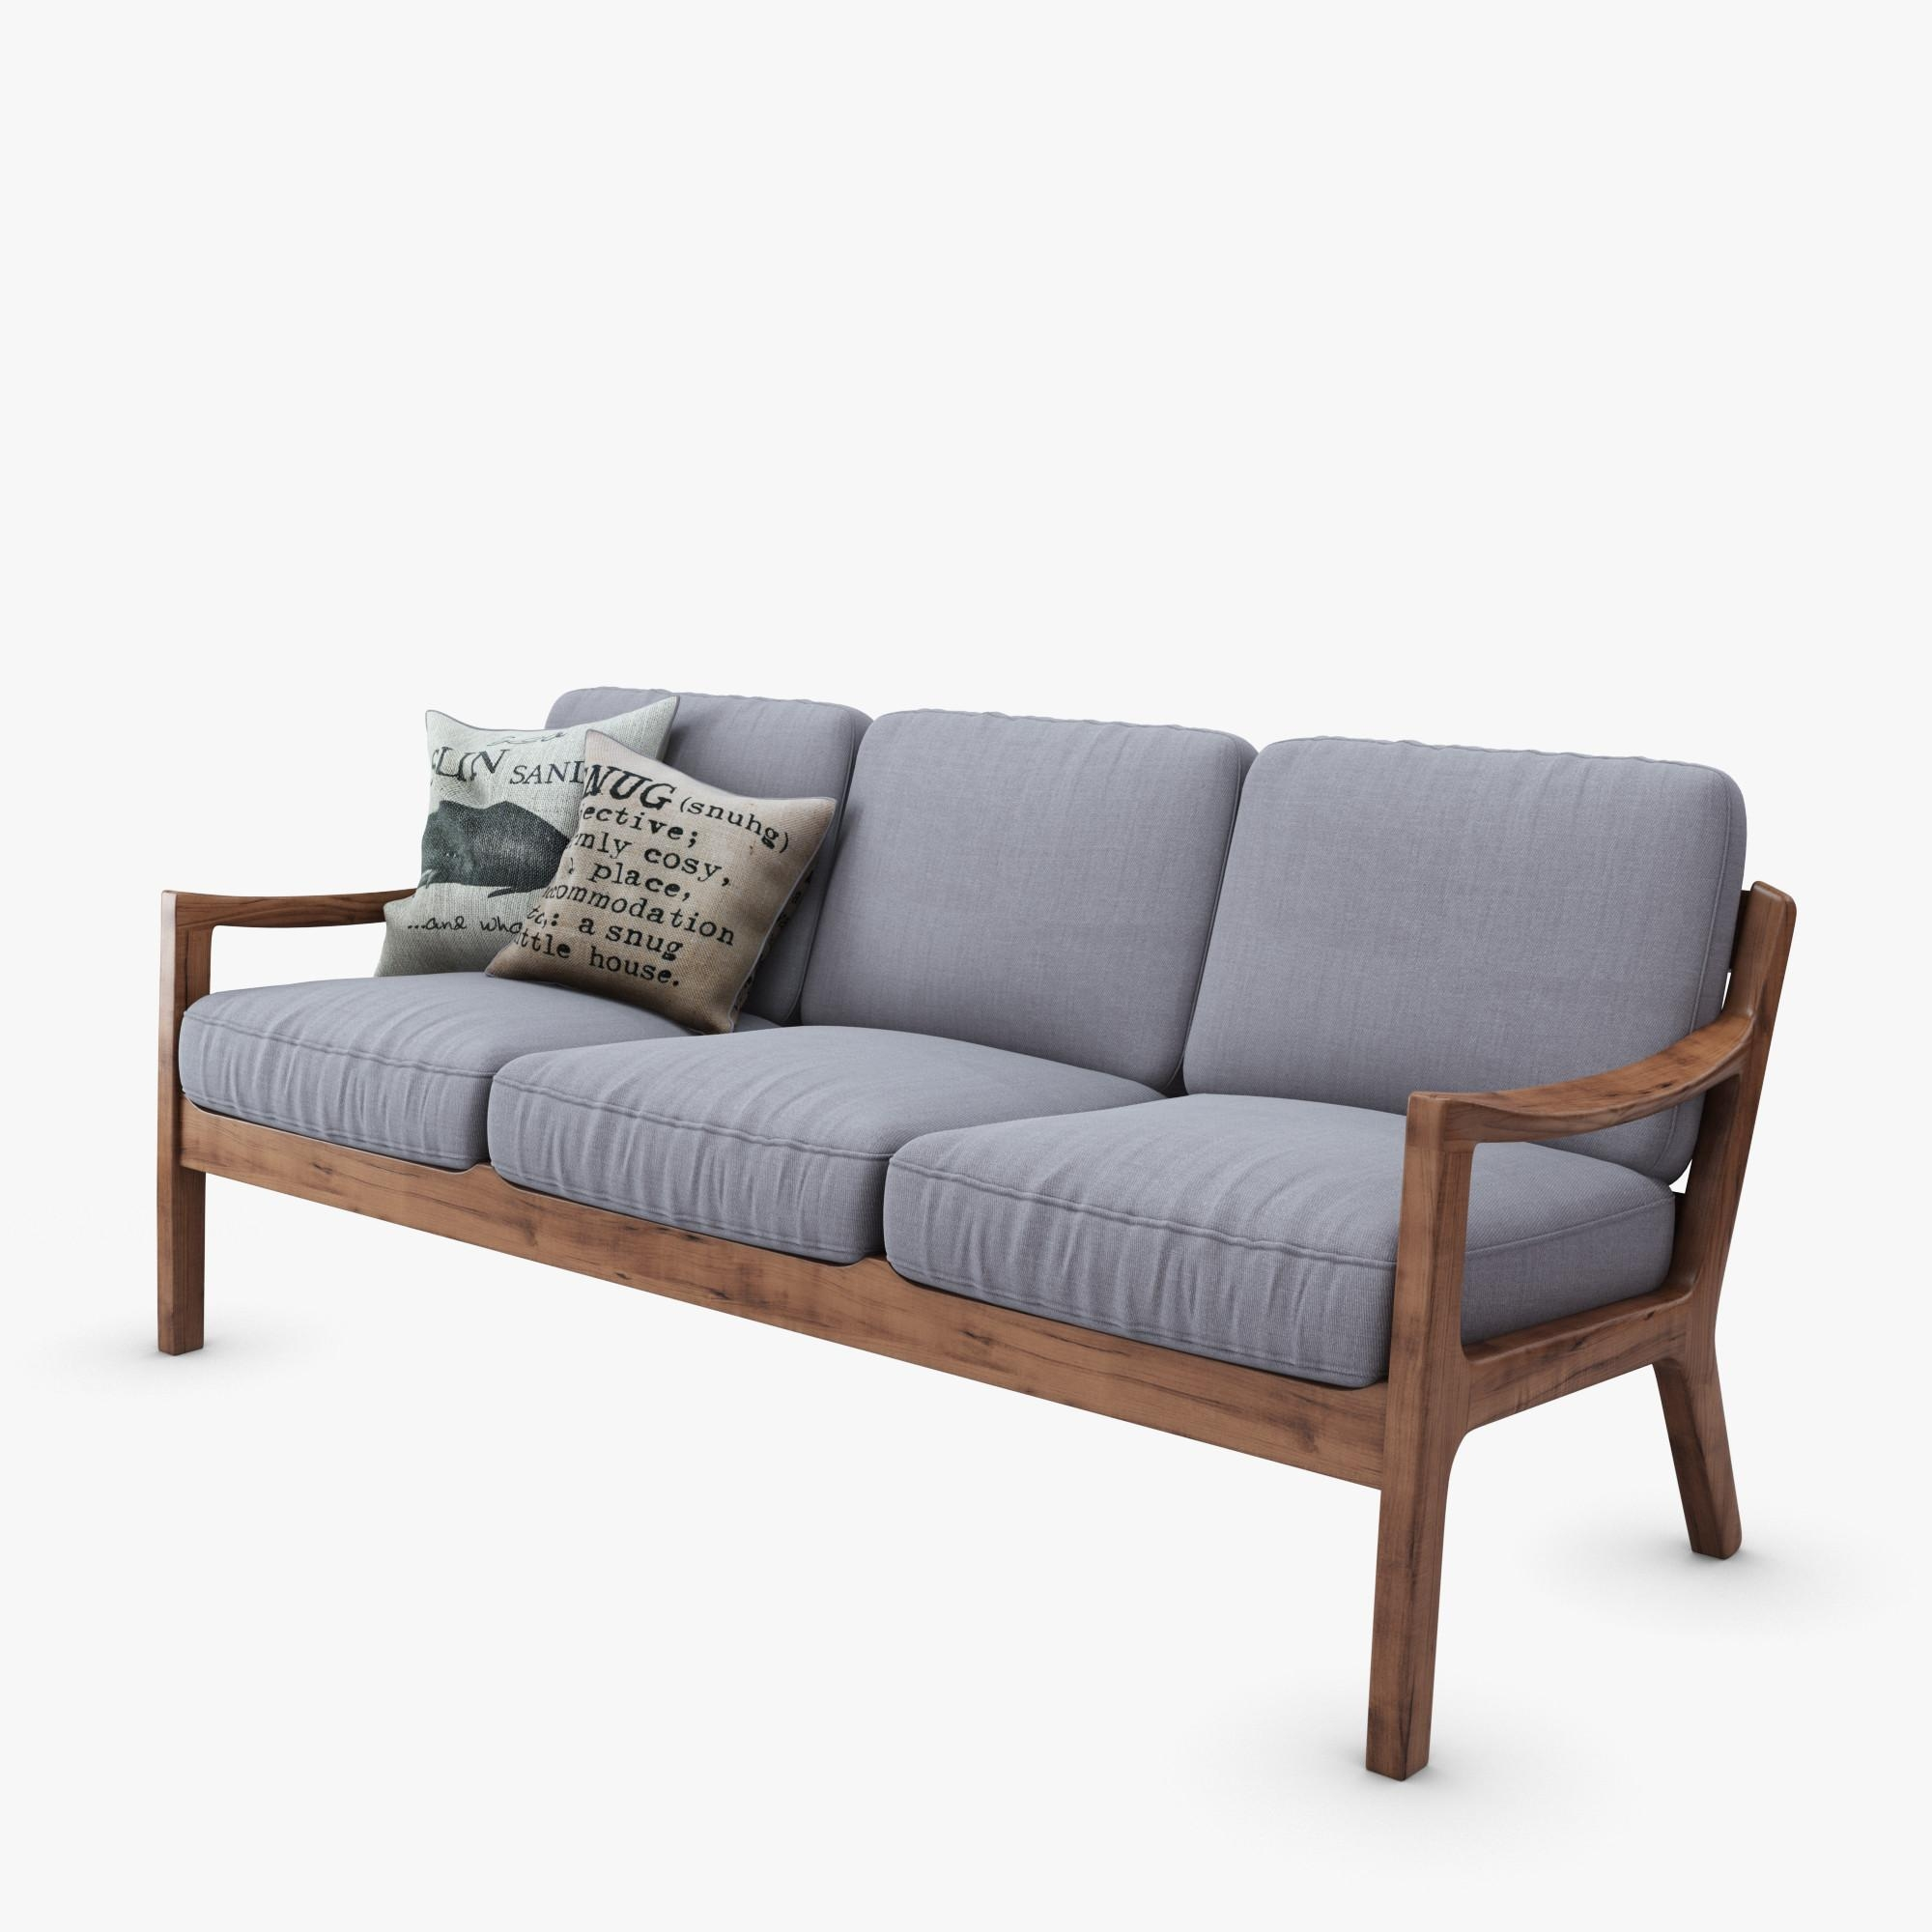 Danish Square 3 Seater 3D Model Throughout Modern Danish Sofas (View 12 of 20)